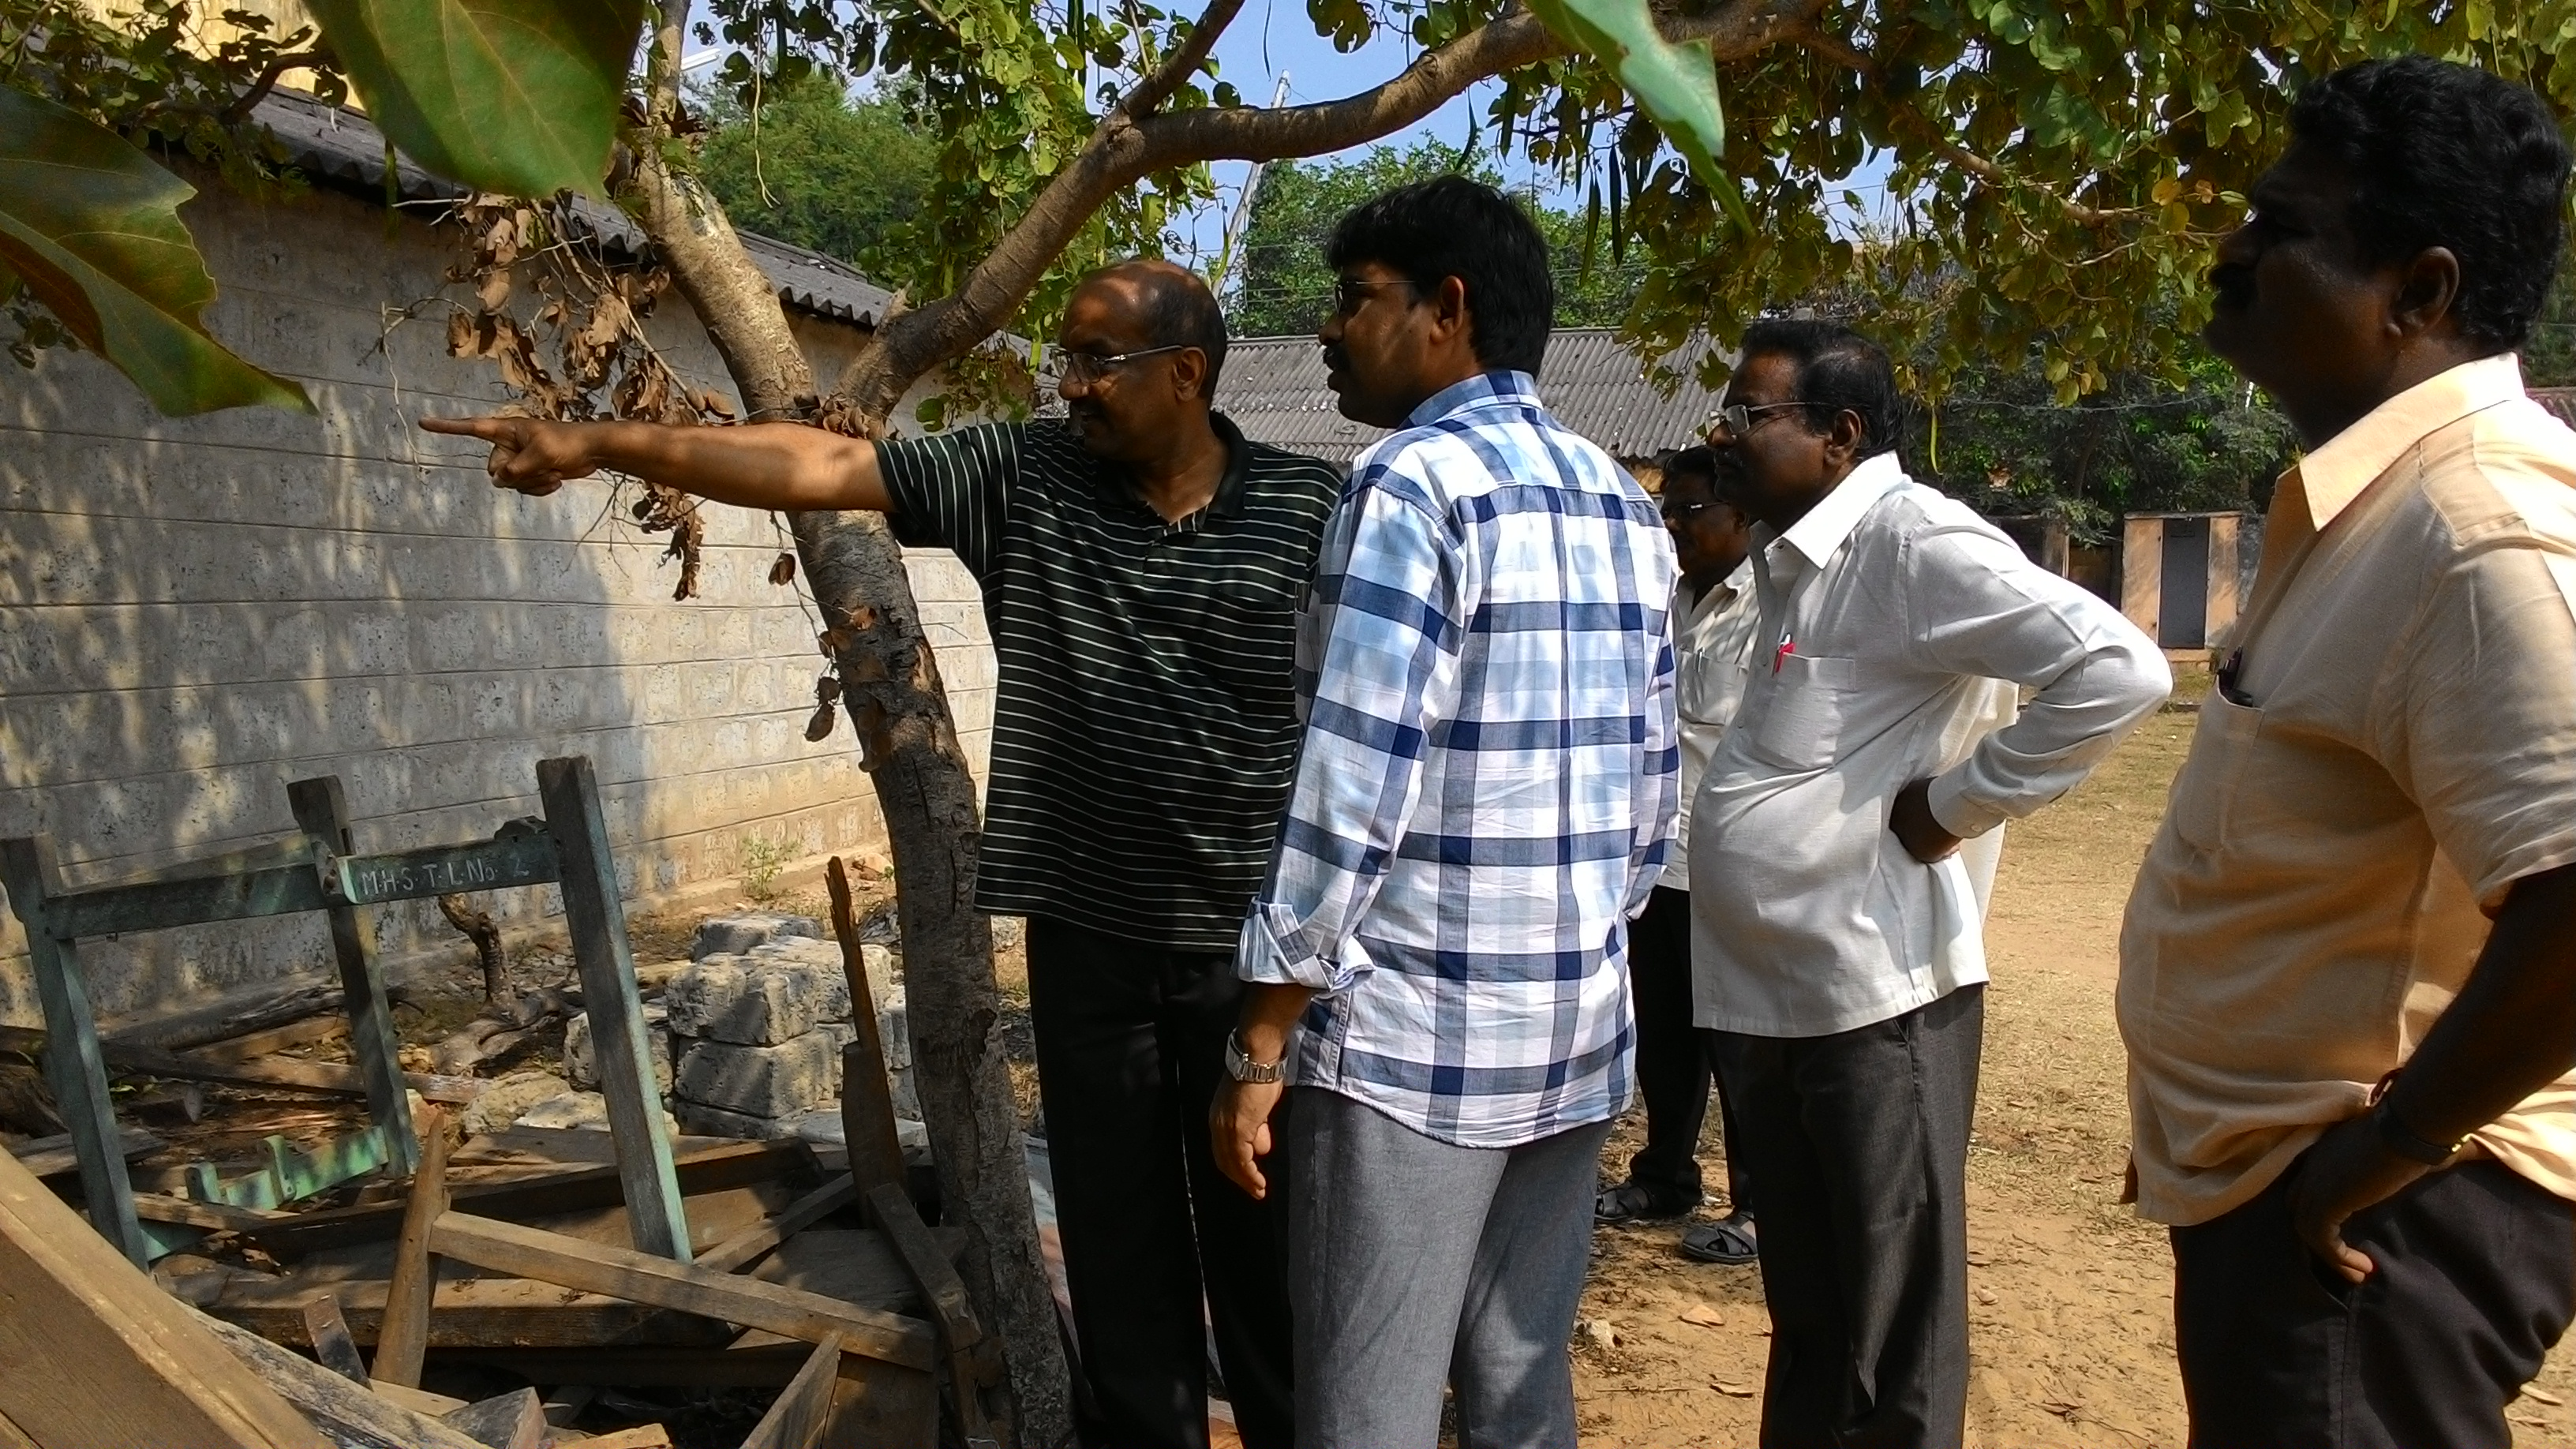 Inspecting the old benches with the Municipal Commissioner